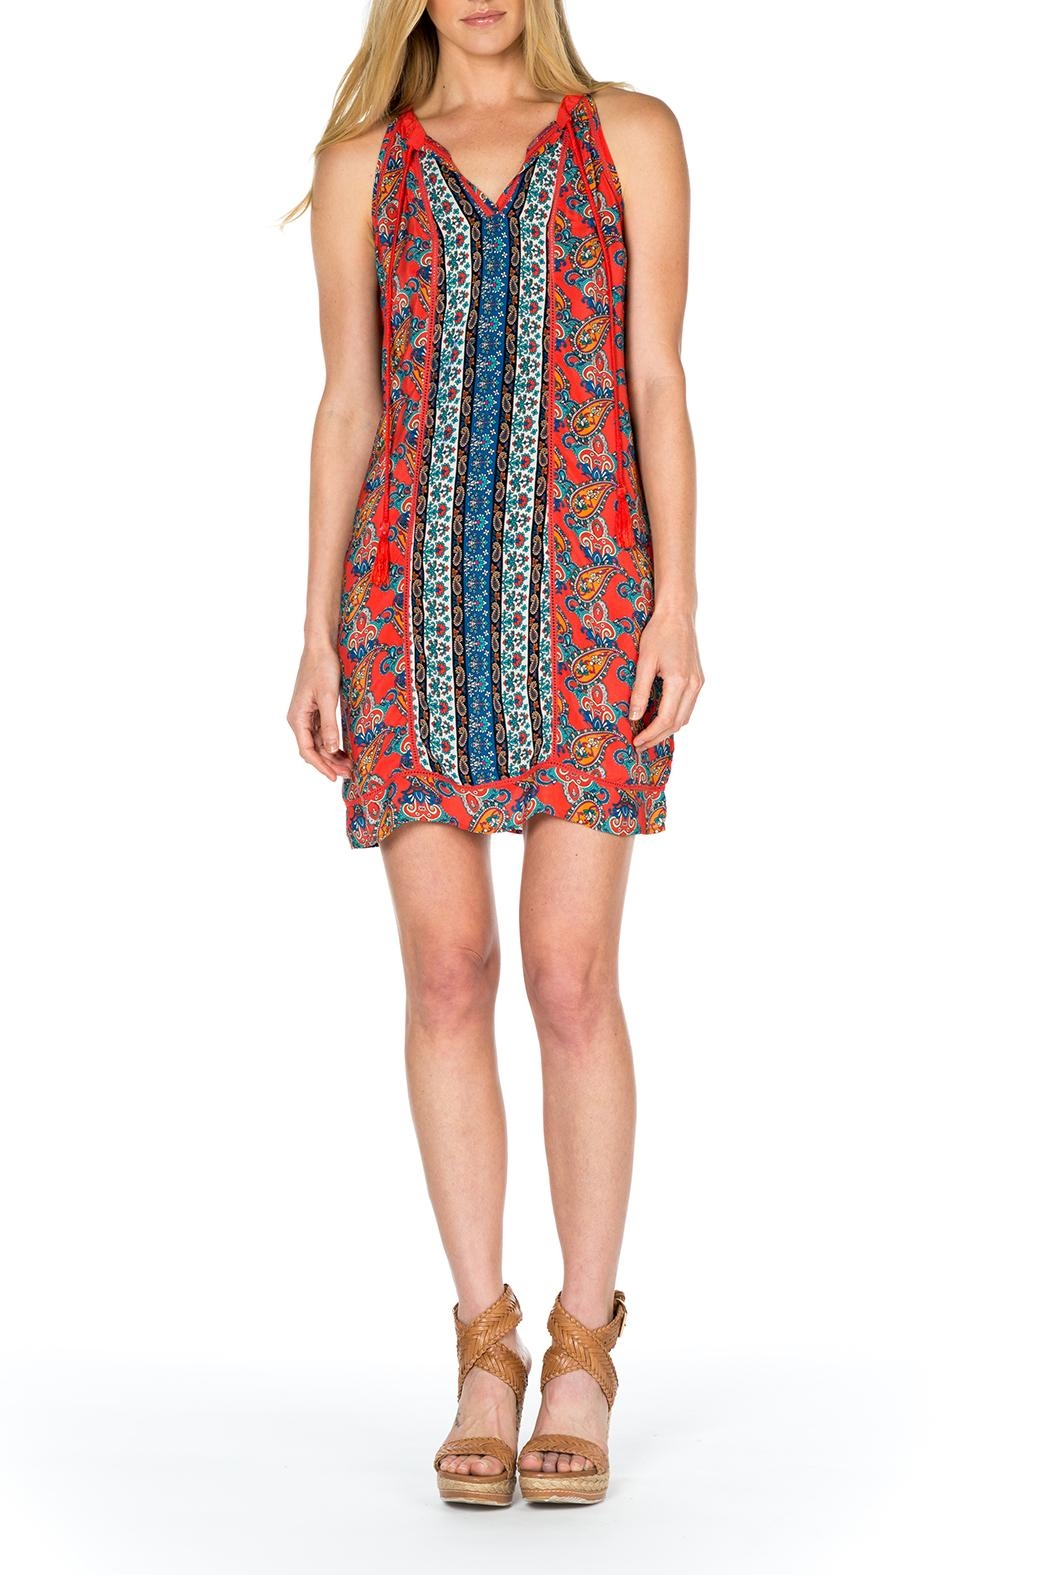 Tolani Savannah Silk Dress - Main Image